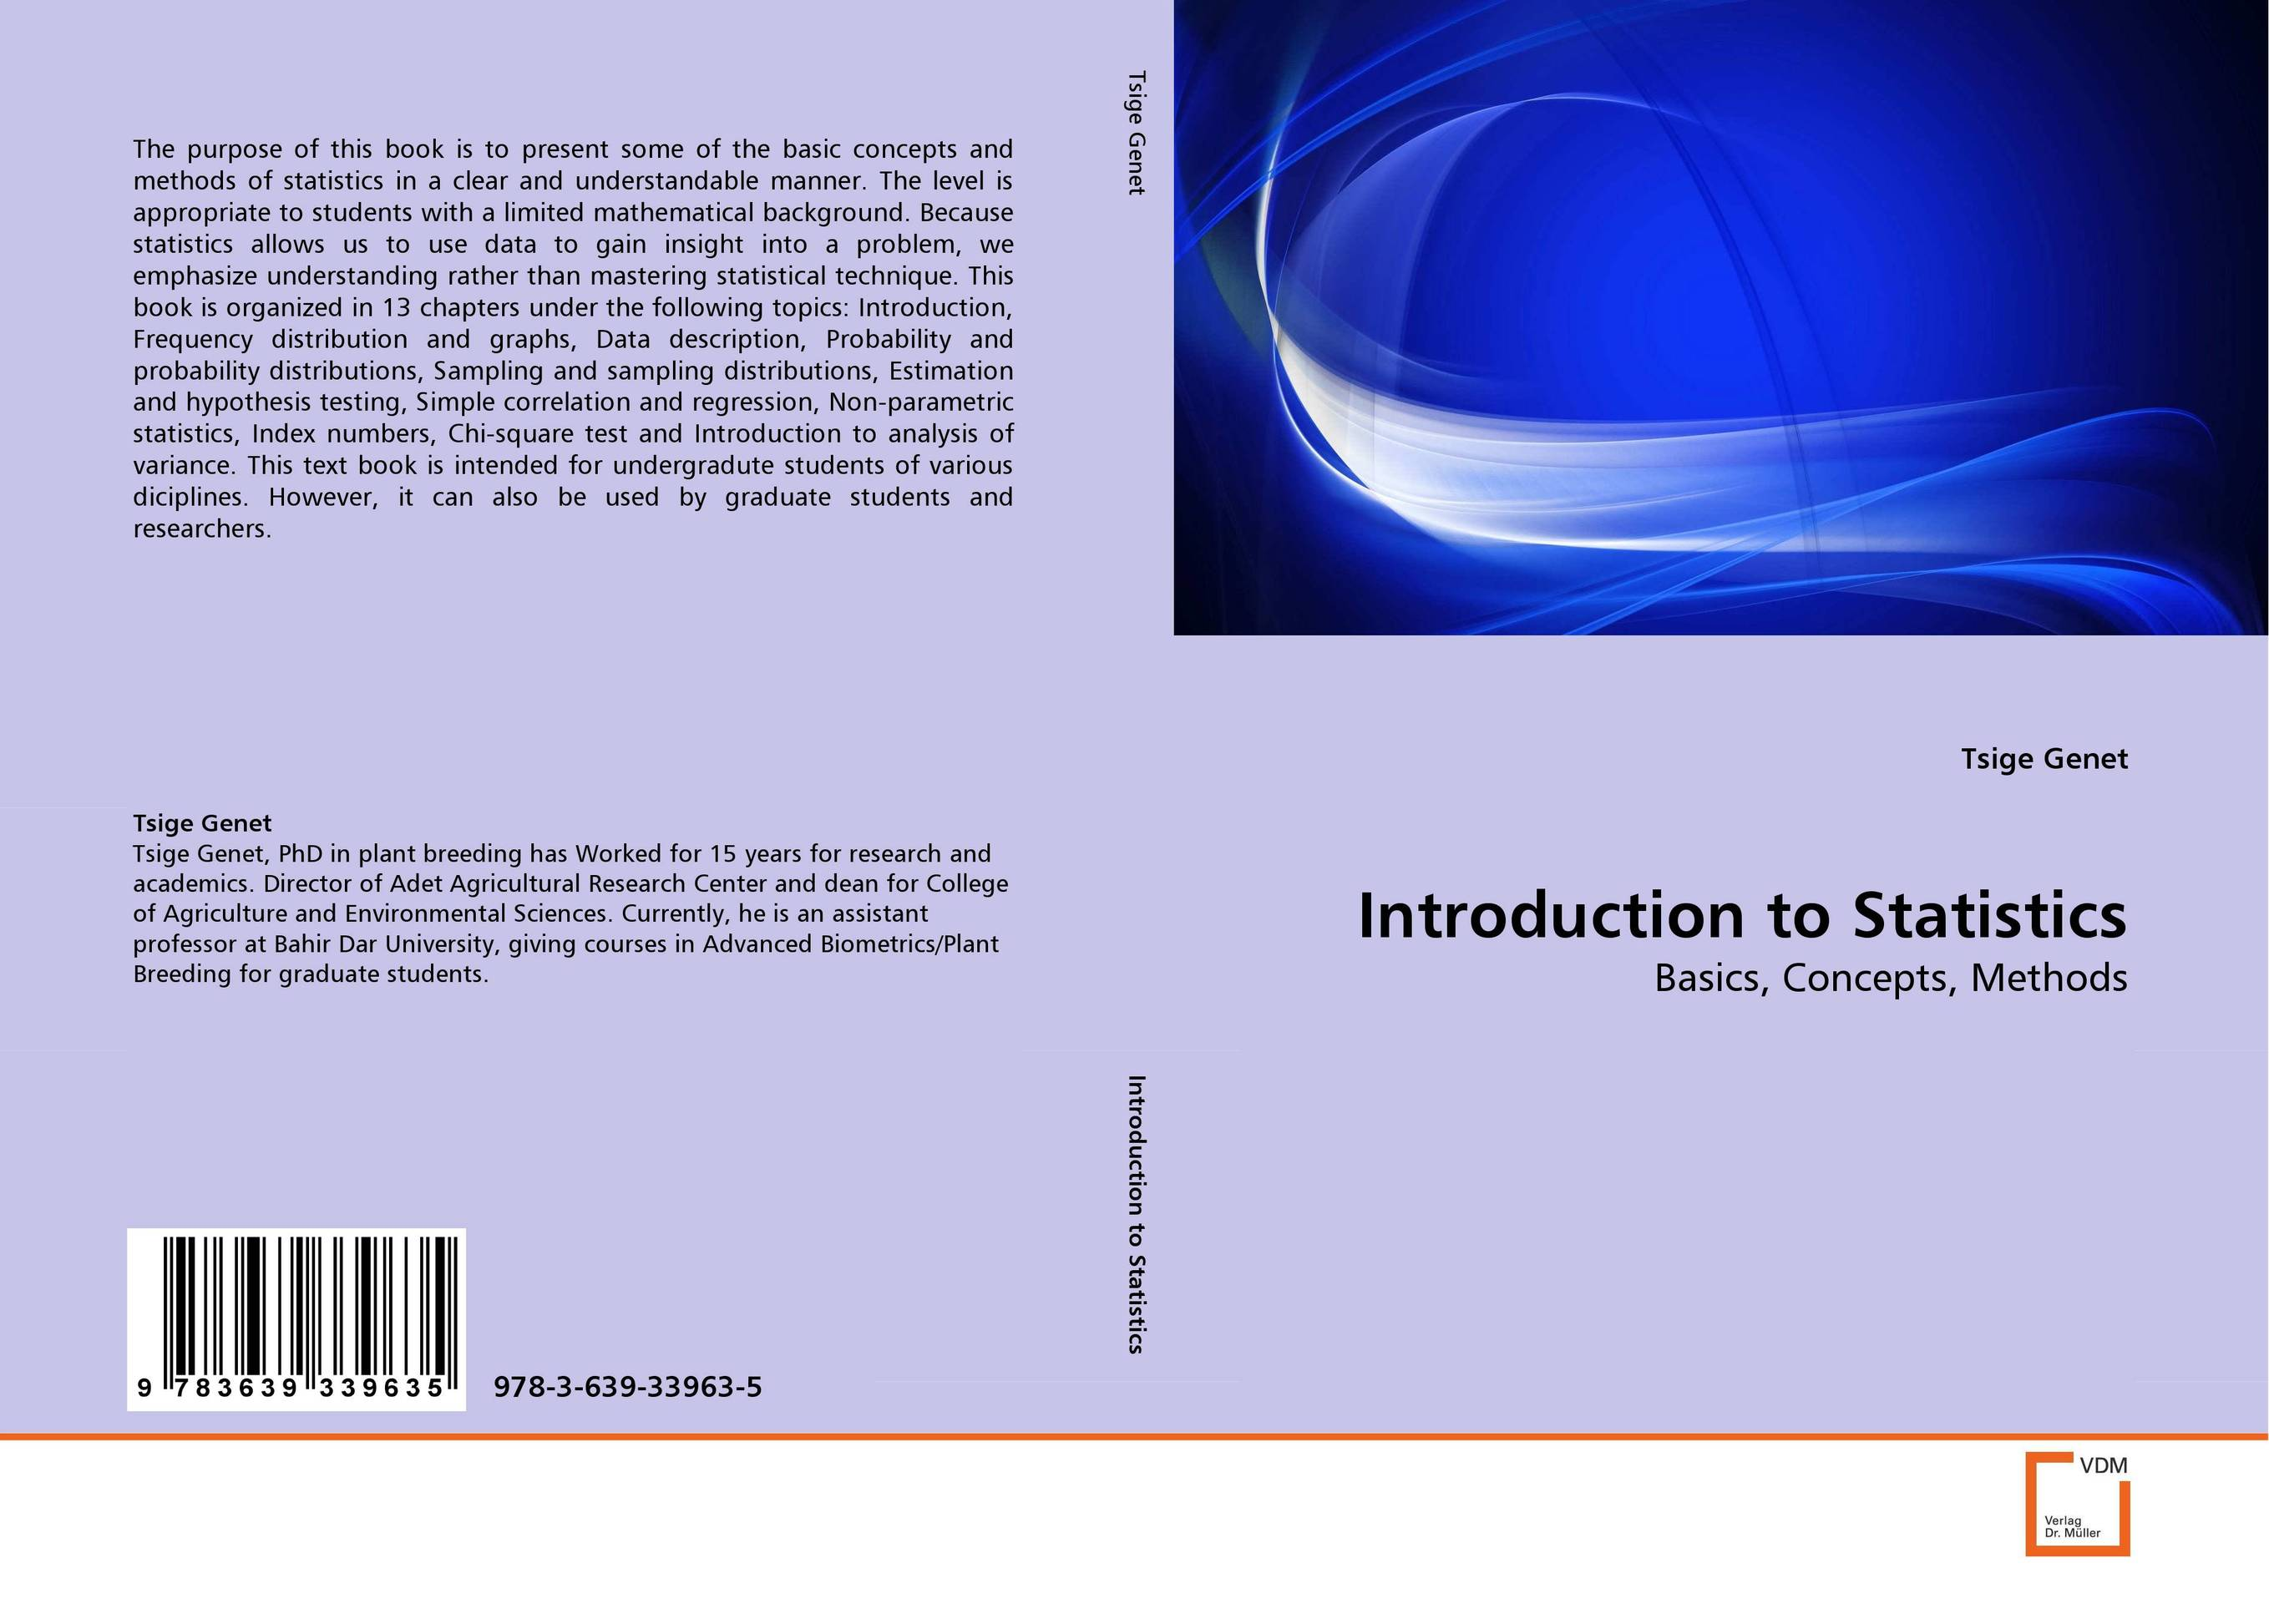 Introduction to Statistics paul g hoel introduction to mathematical statistics